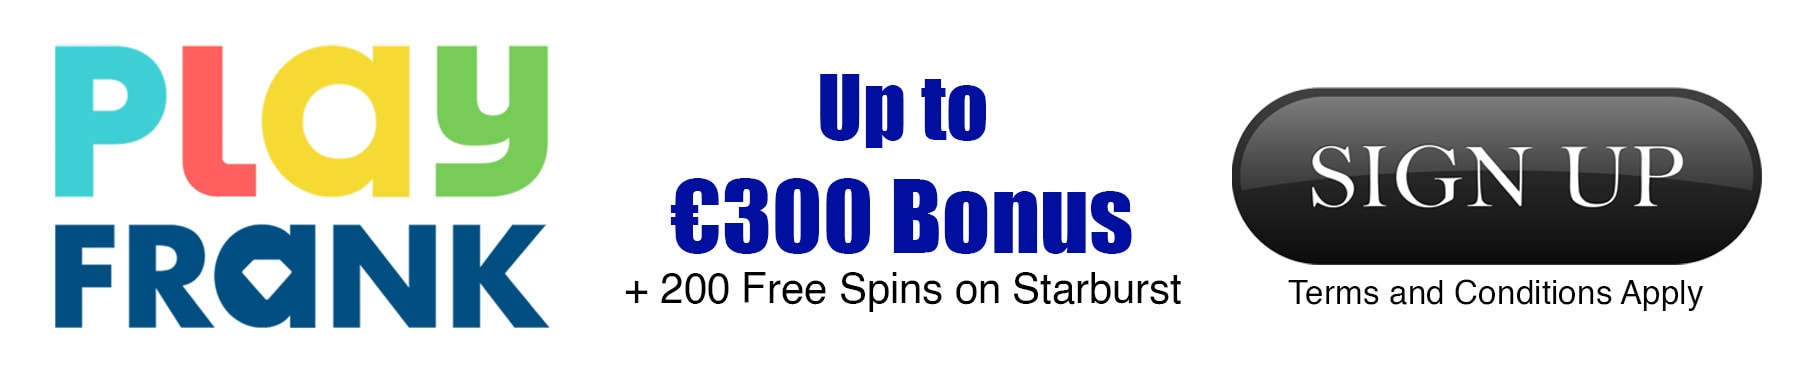 Online Casino Bonus Guide – All You Need to Know